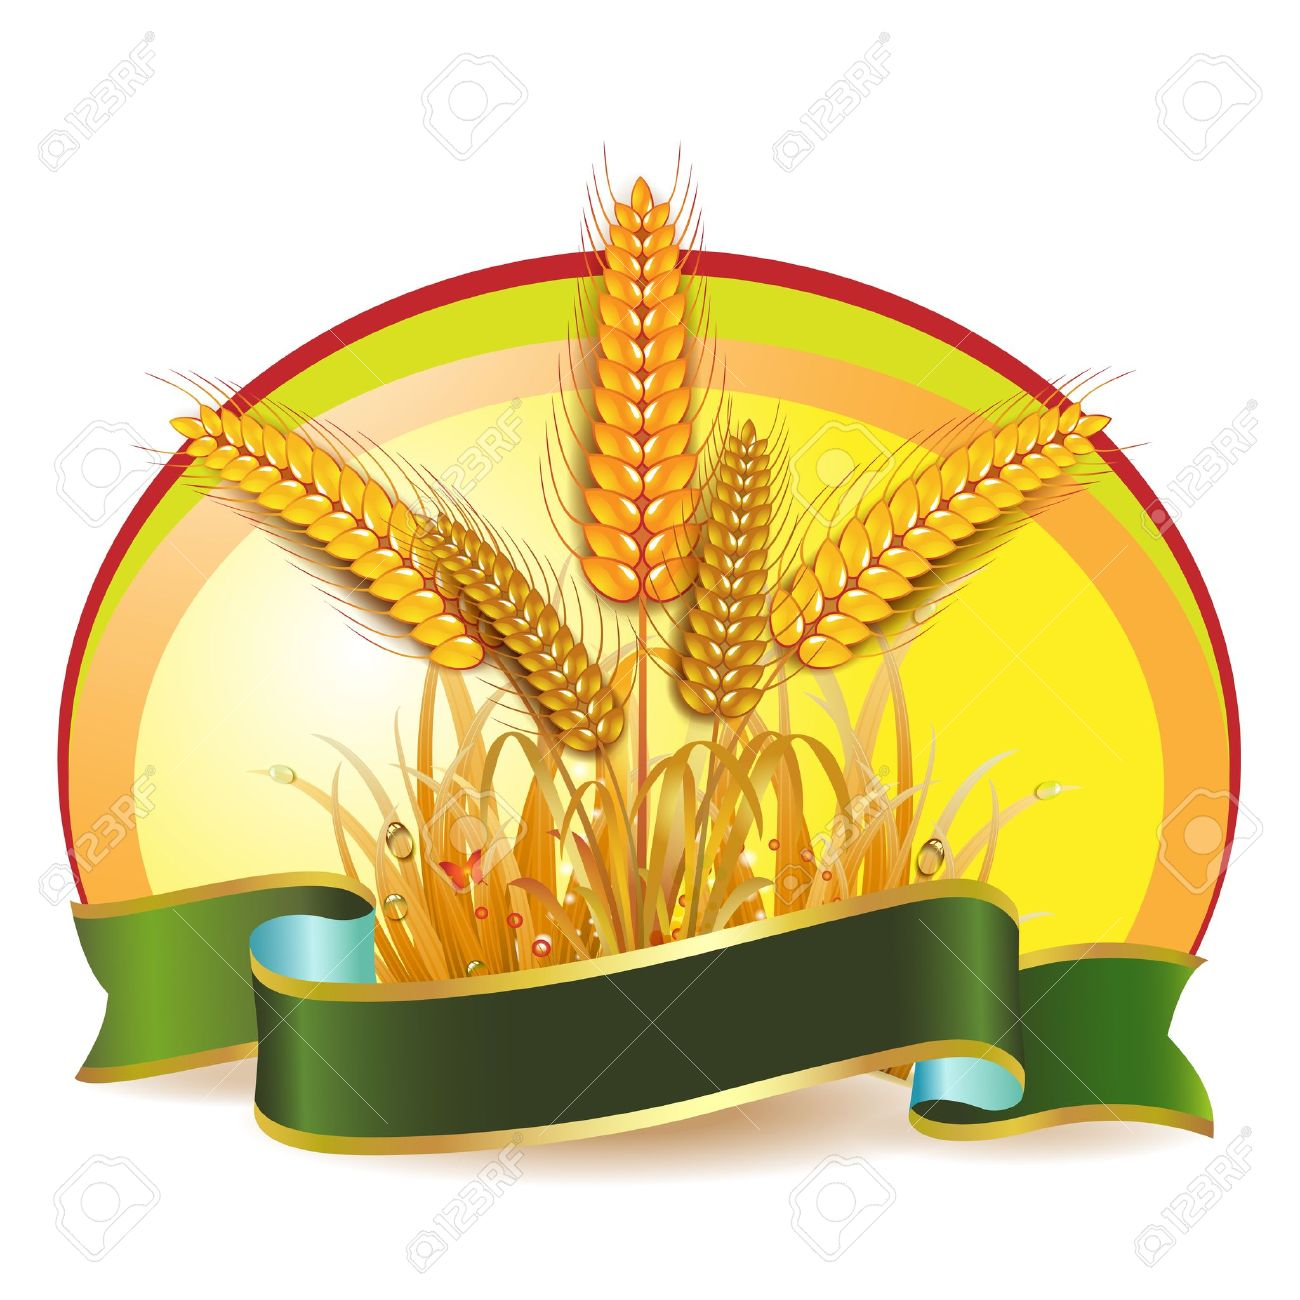 Wheat ears with ribbon Stock Vector - 10641529